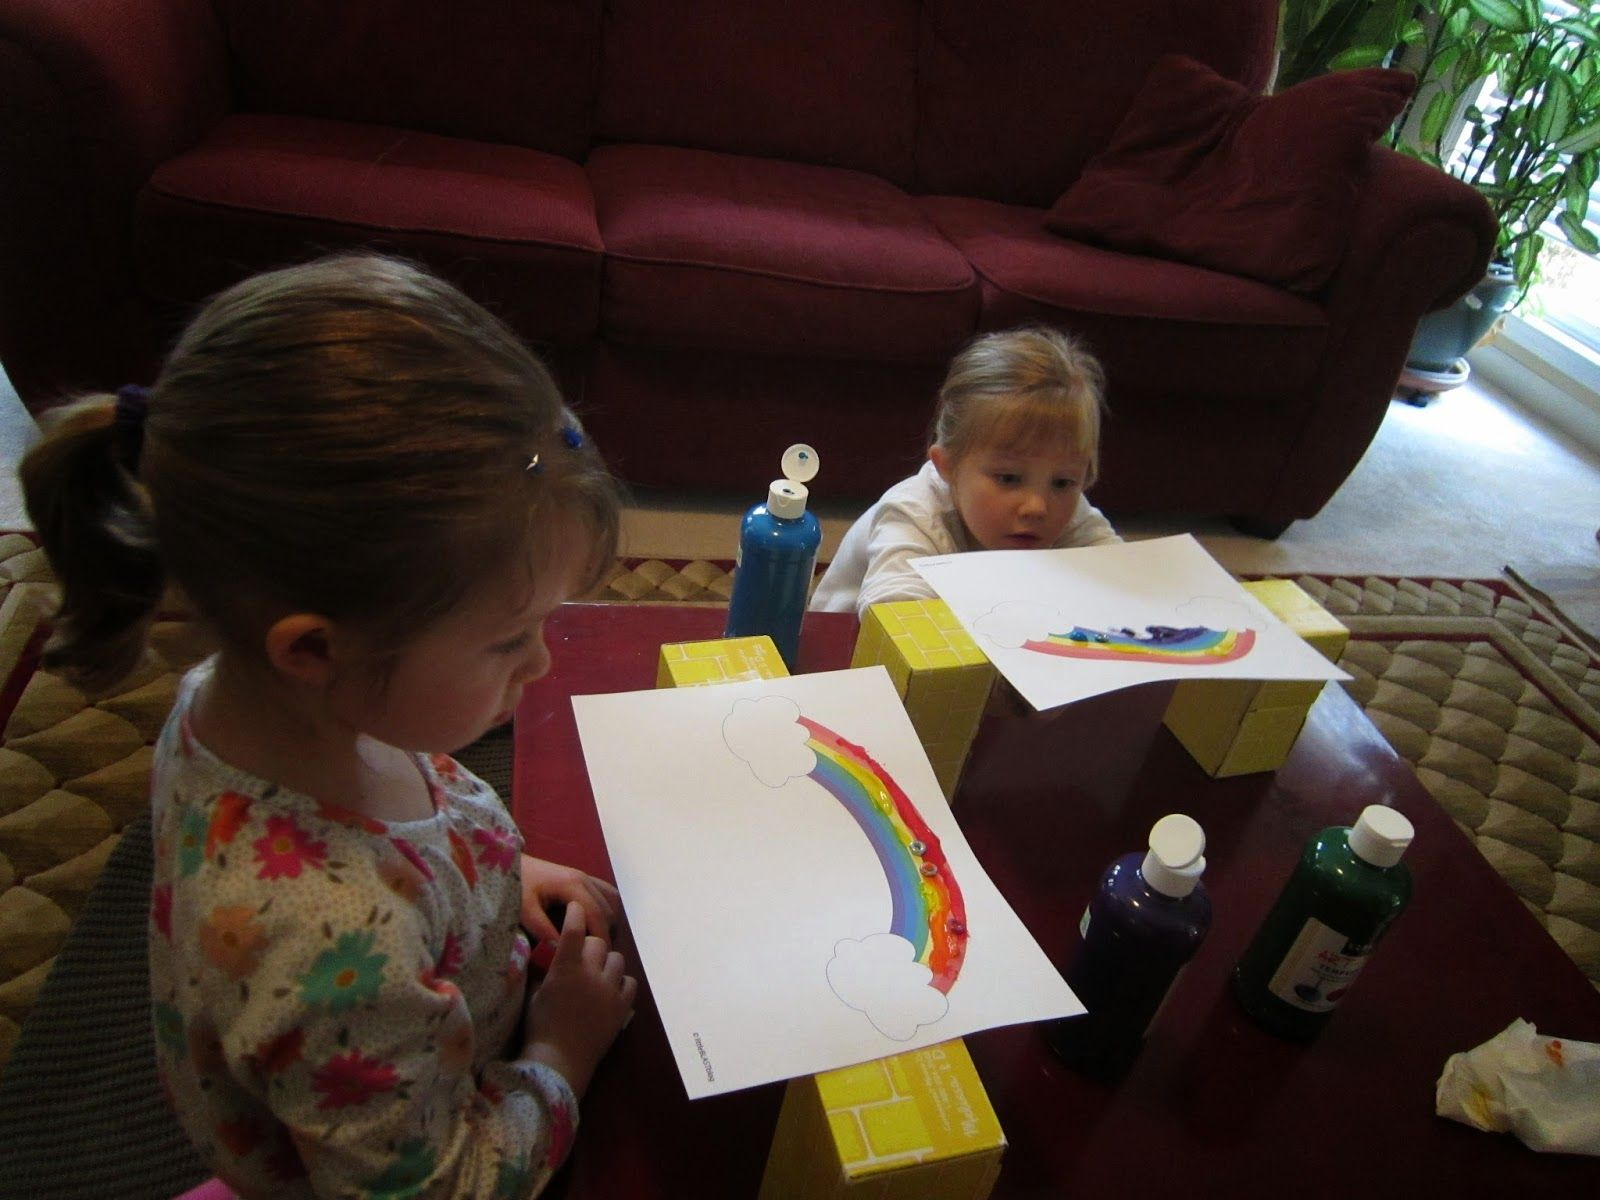 Make Magnetic Rainbow Masterpieces while learning about magnets, rainbow colors, and developing fine motor skills!